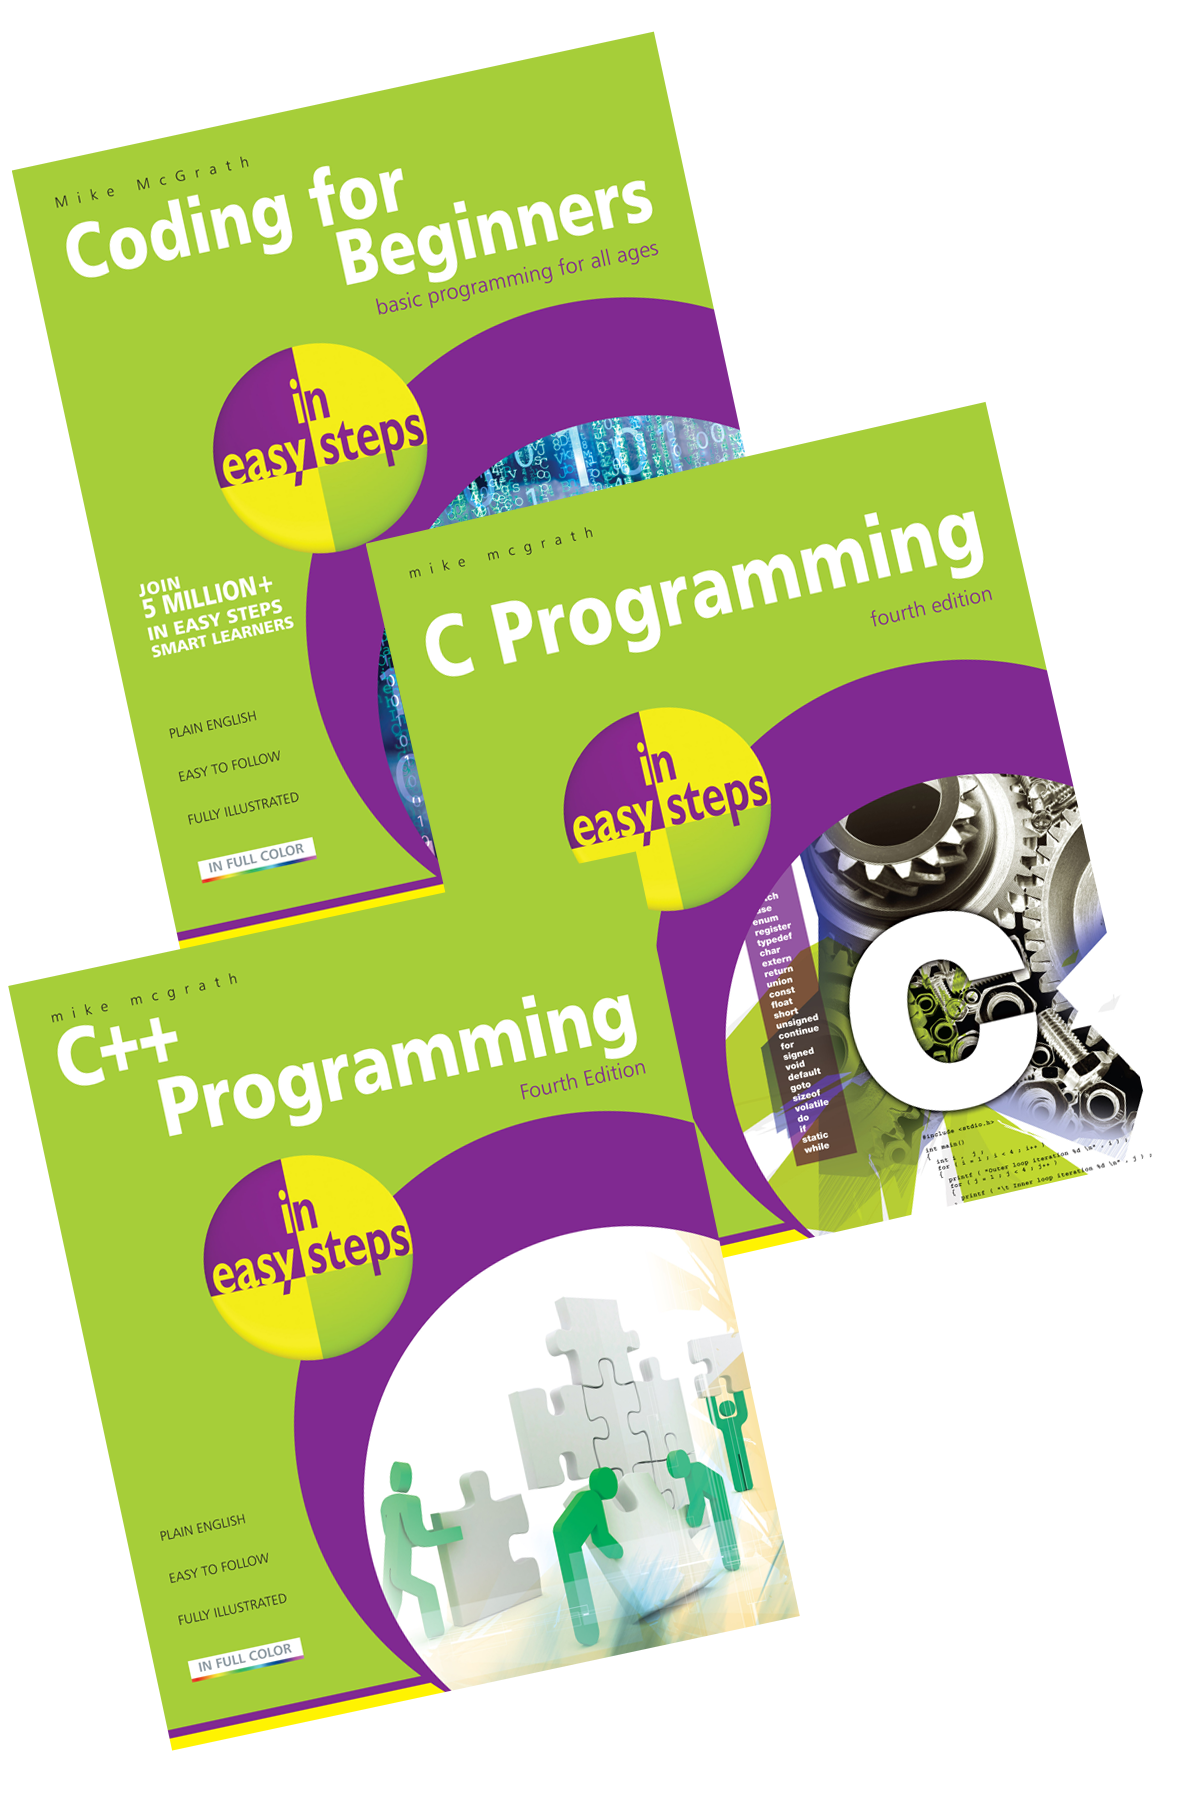 Coding for Beginners in easy steps, C Programming in easy steps, C++ Programming in easy steps